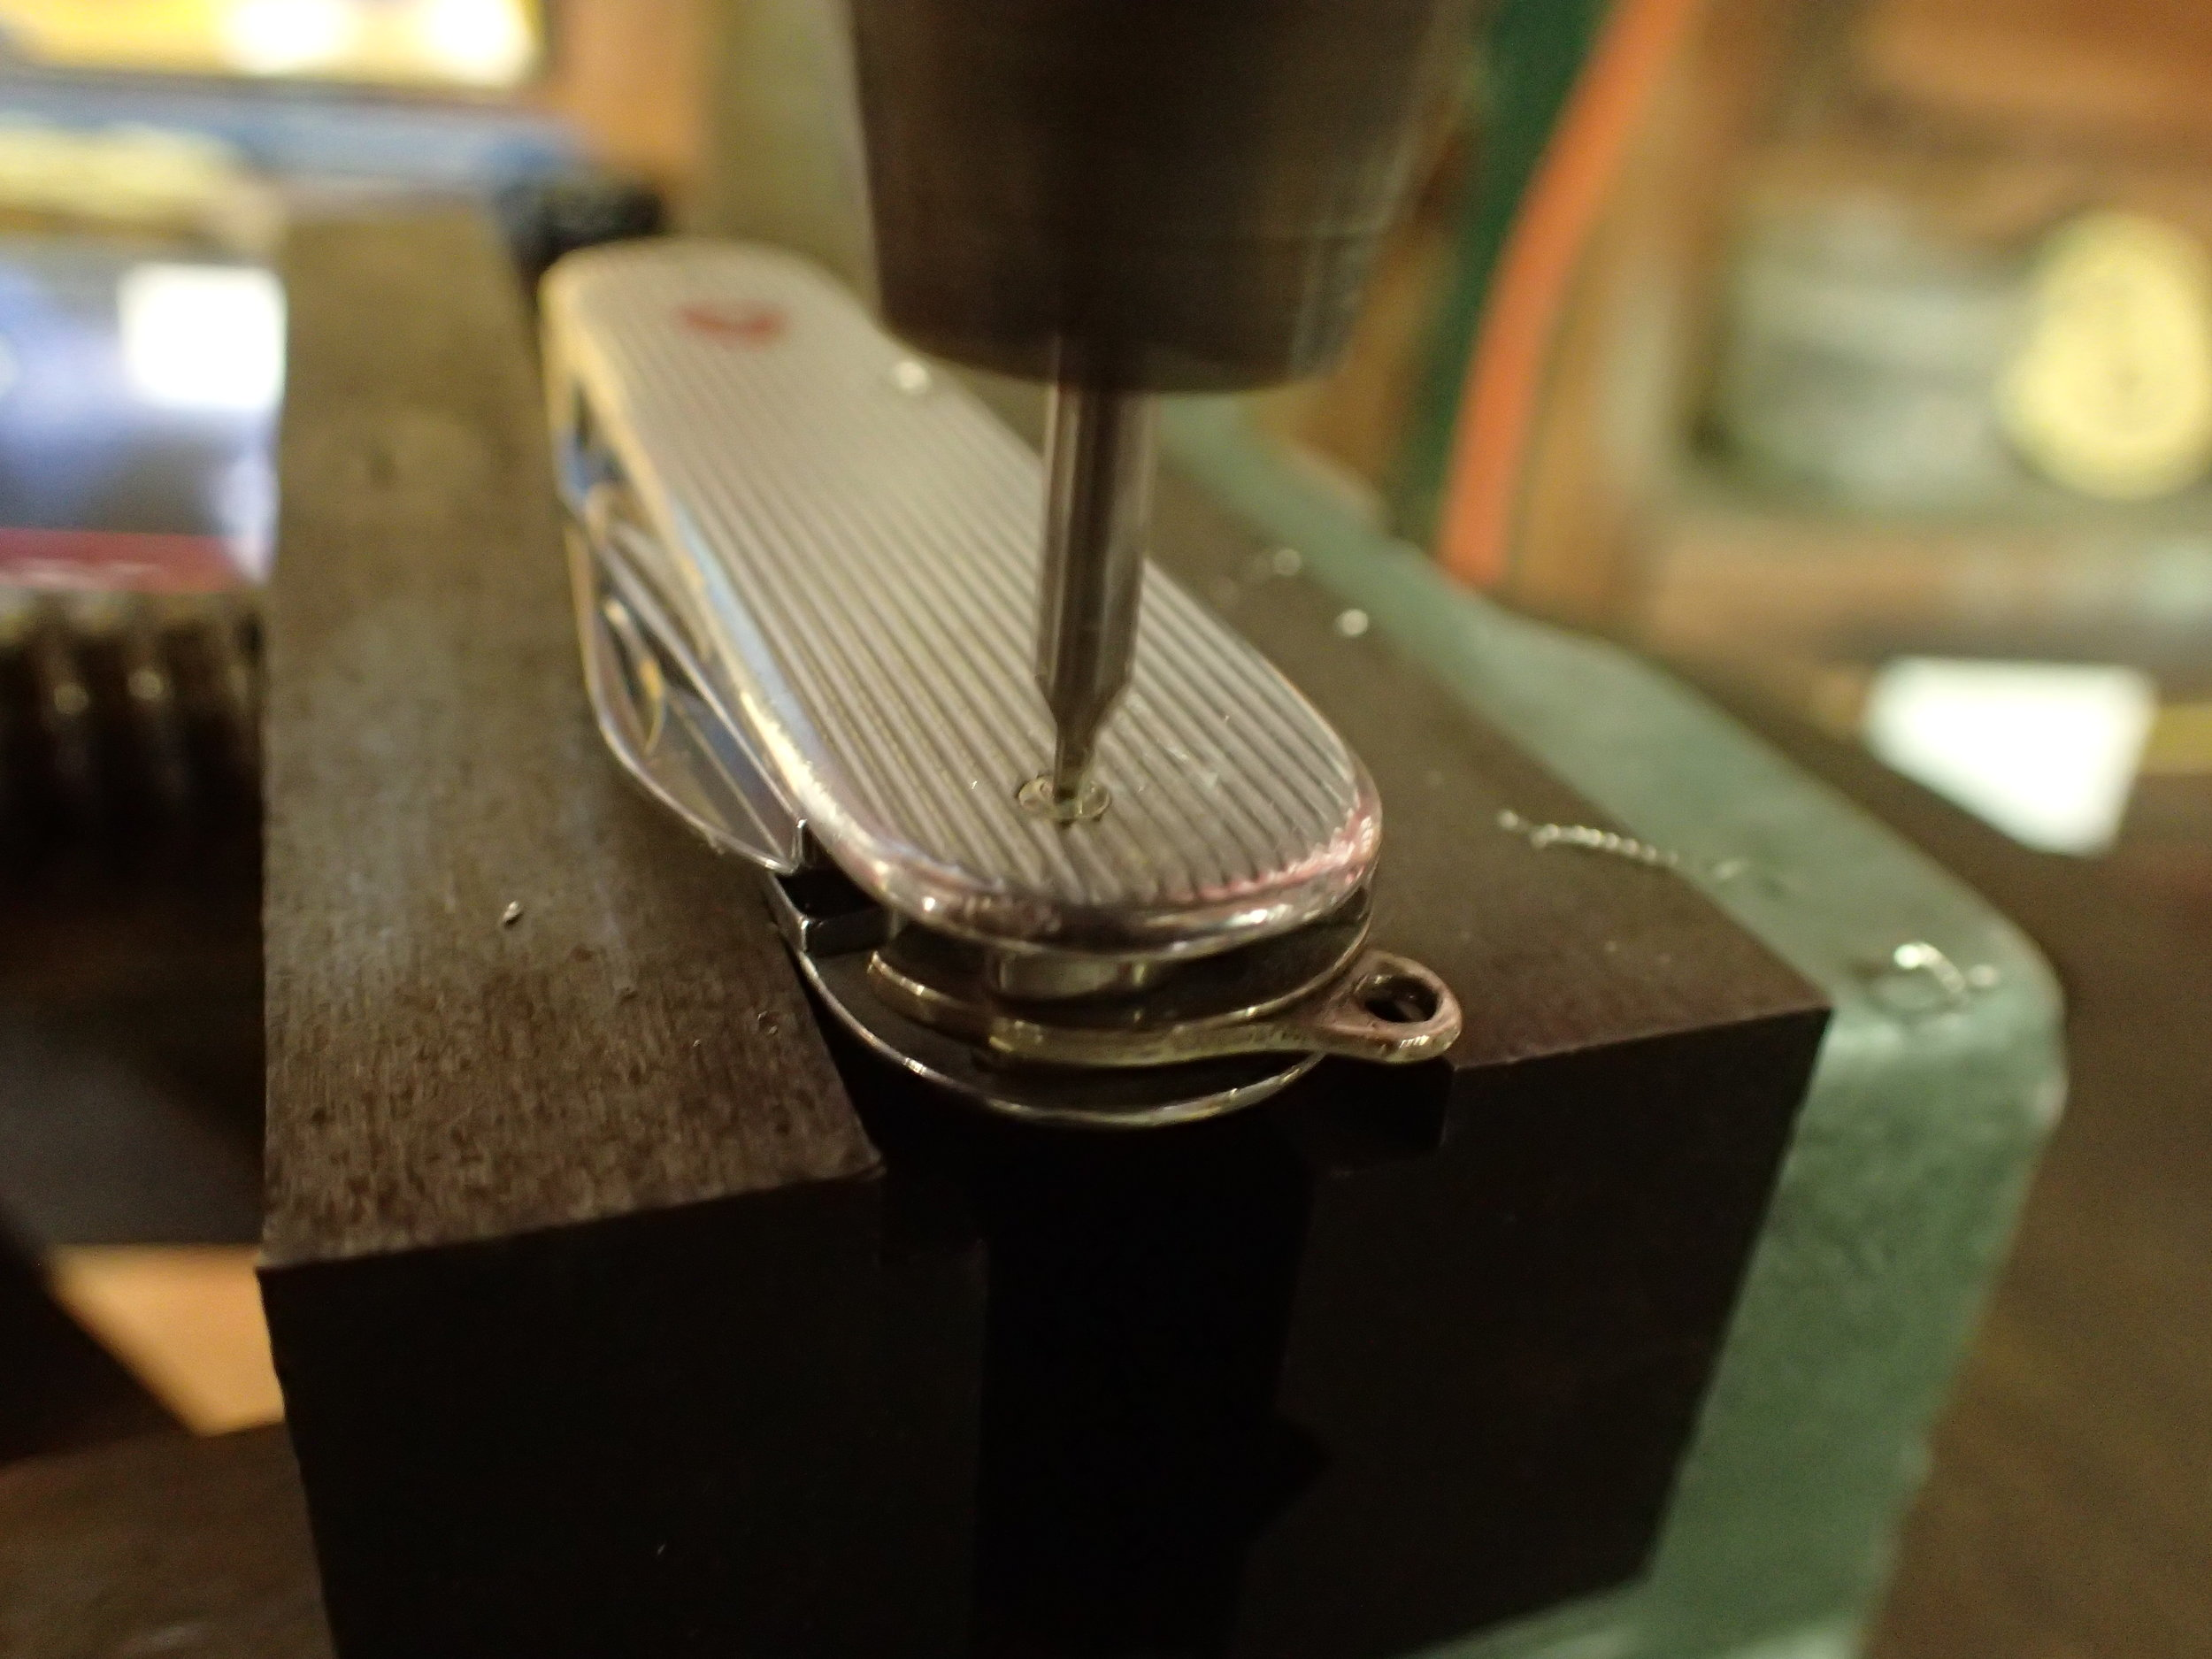 The rivet heads on the pins of the subject knife being drilled out.